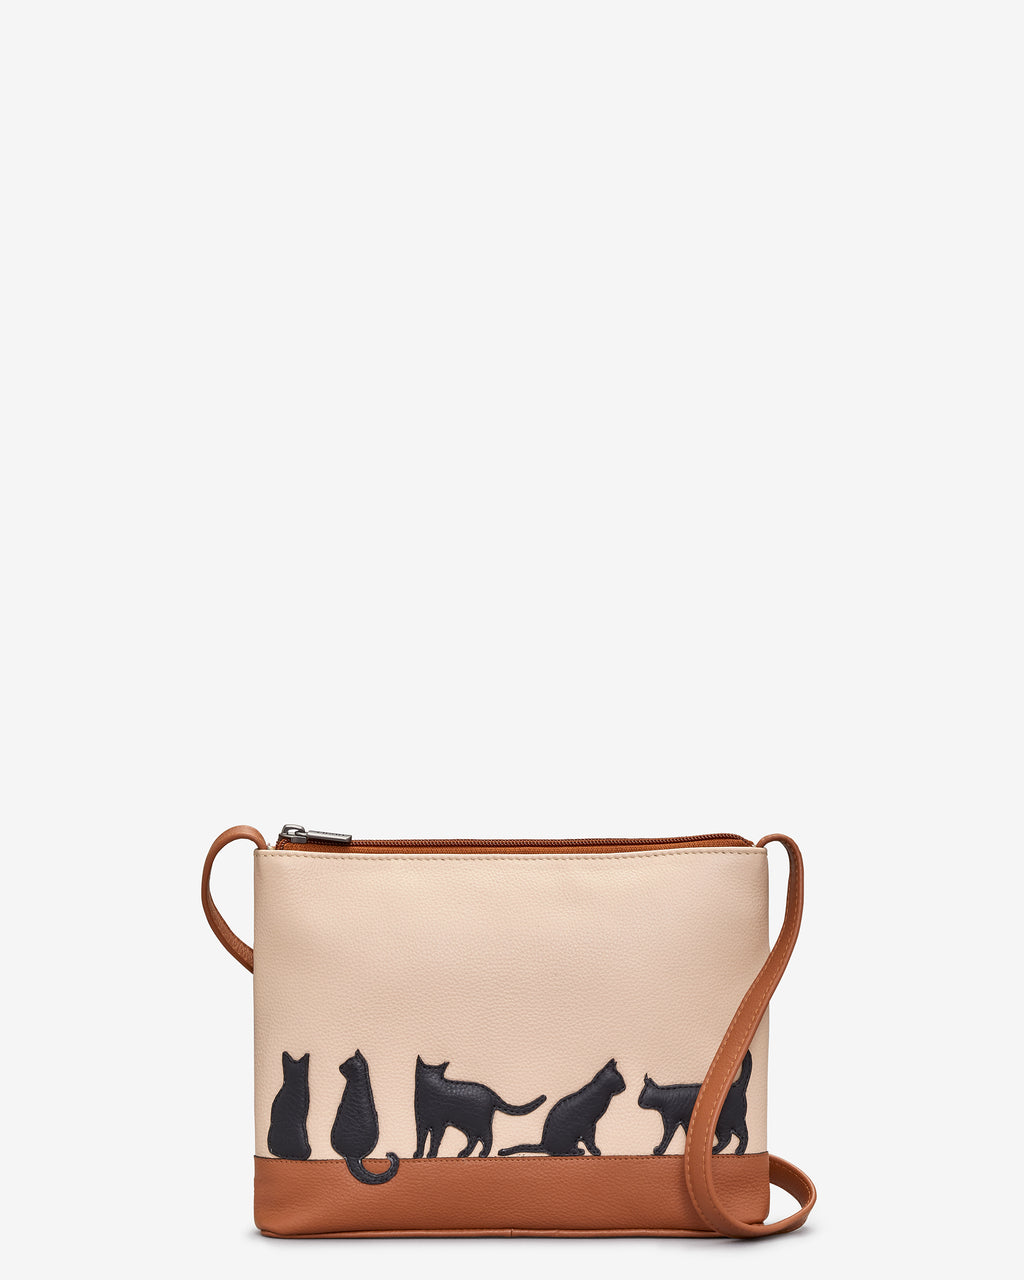 Clowder of Cats Leather Cross Body Bag